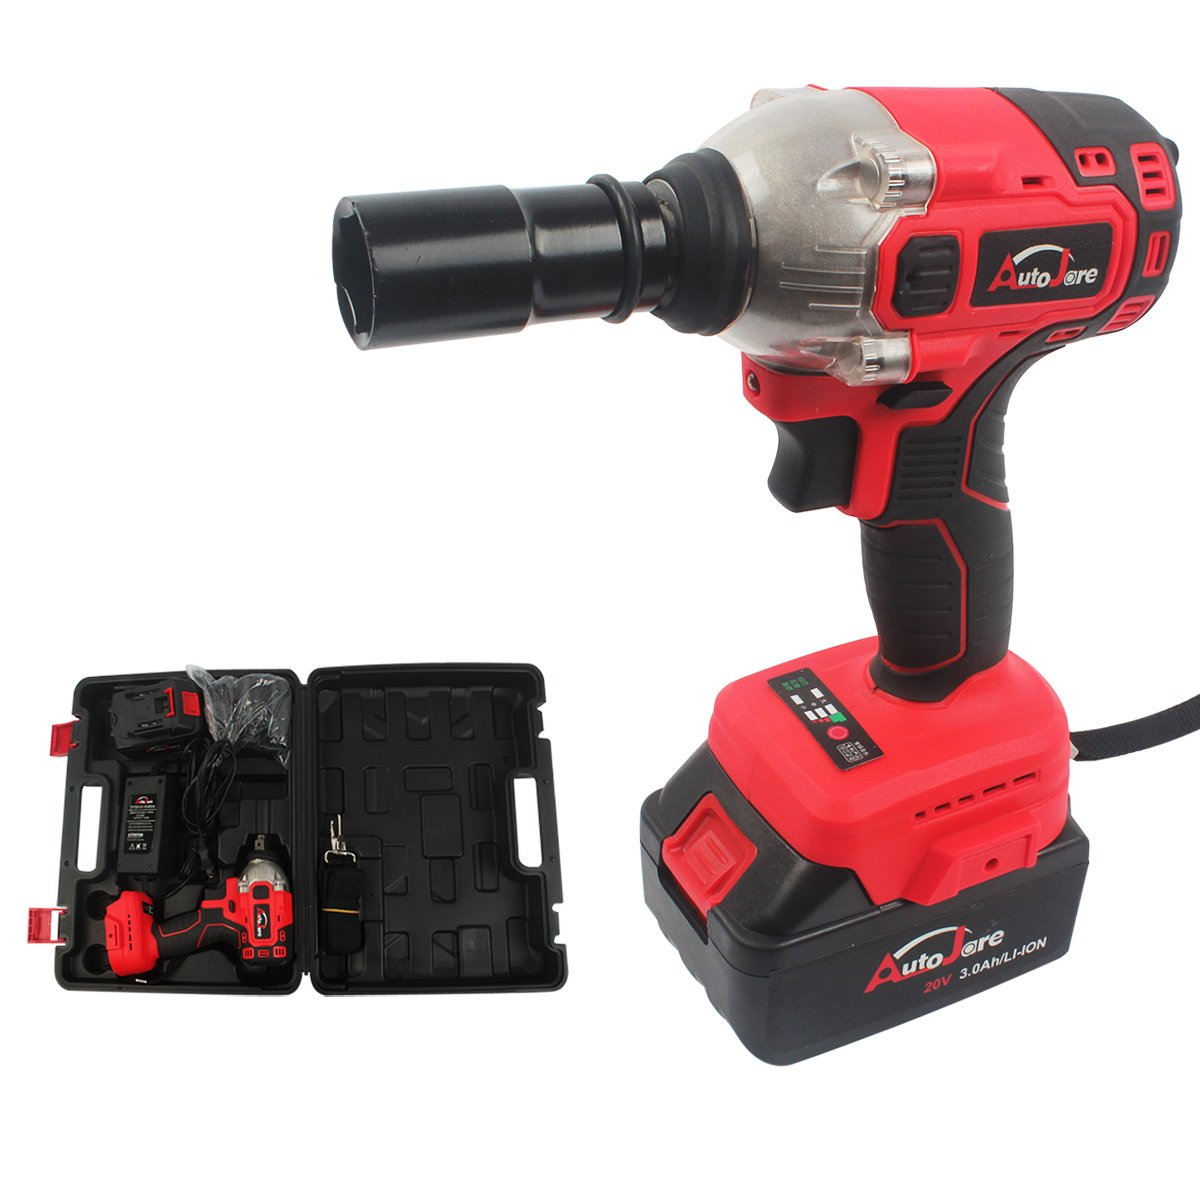 AUTOJARE Cordless Impact Wrench Kit, Brushless 20V Max Lithium-Ion 1/2 Inch Cordless Wrench Kit by AUTOJARE